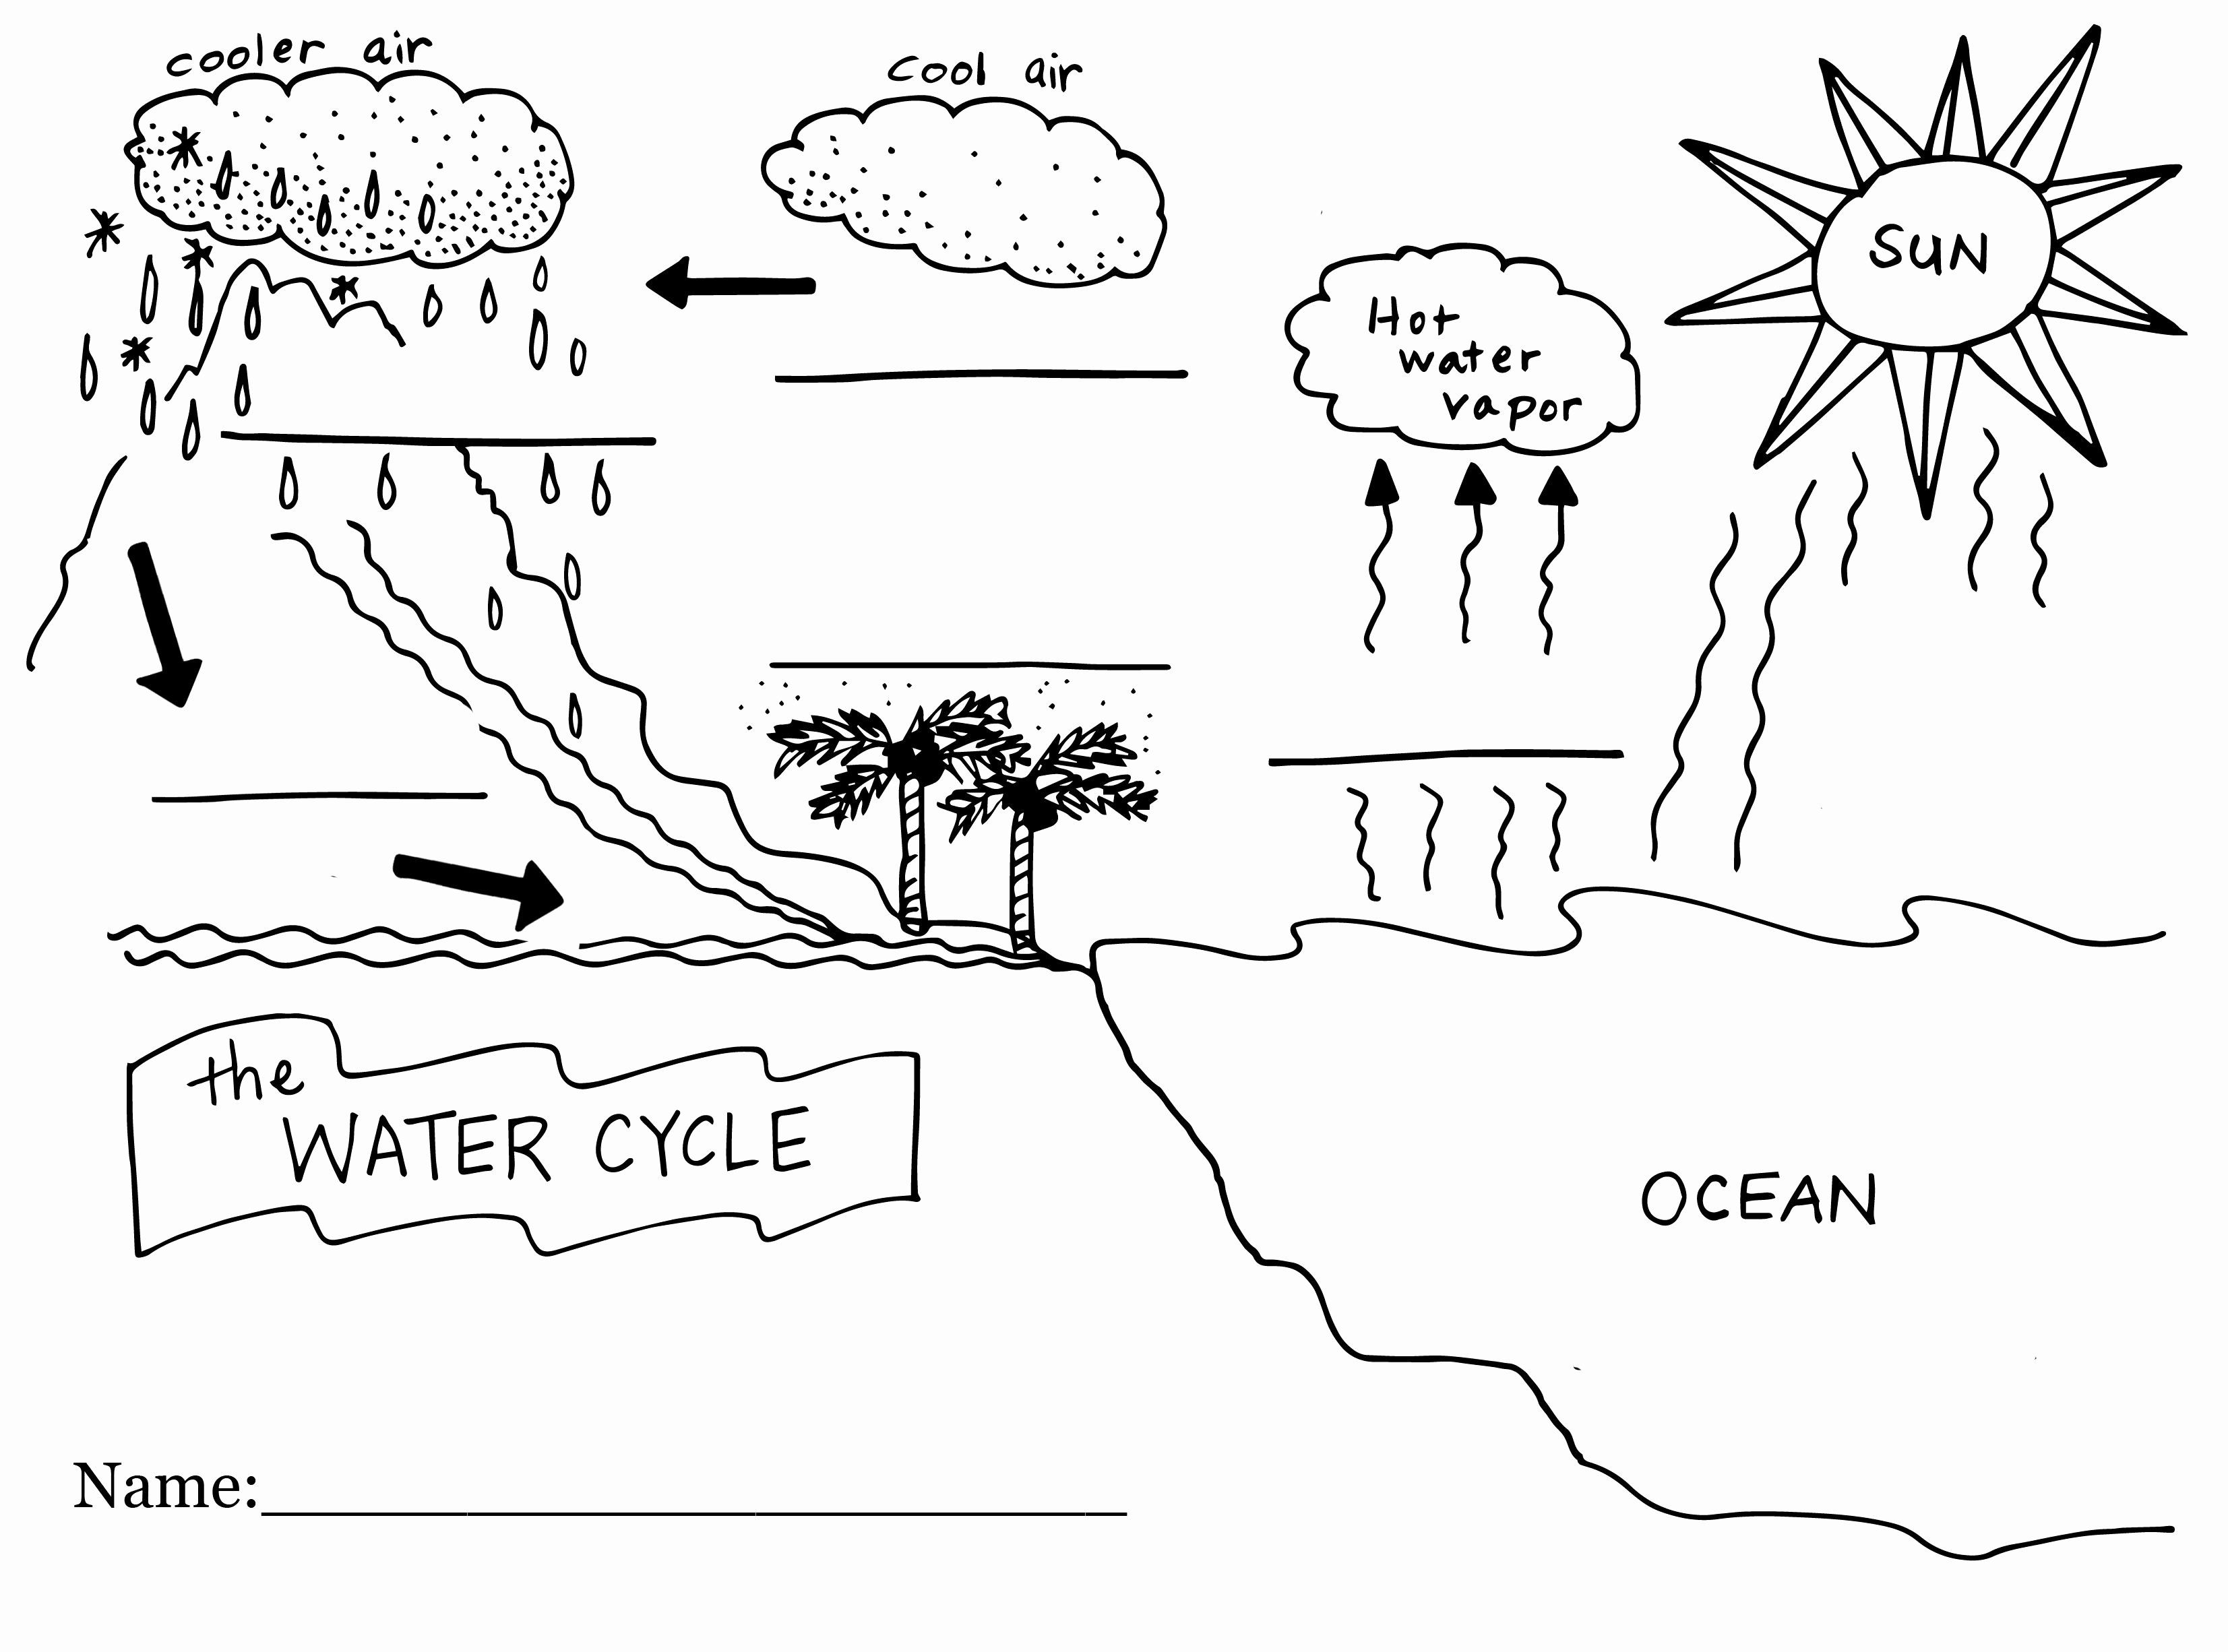 Water Cycle Coloring Page New Water Cycle Coloring Pages